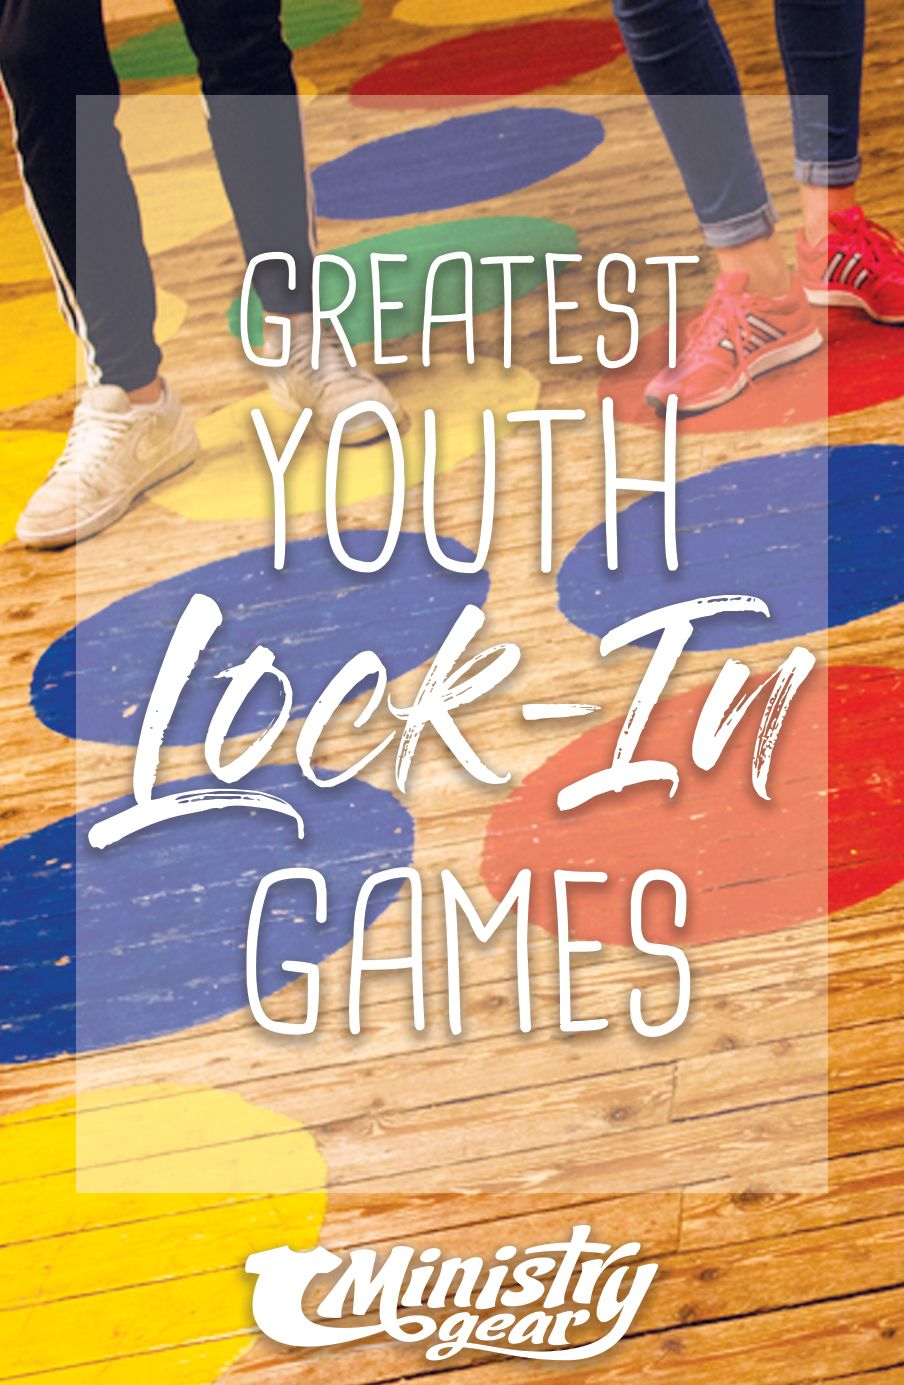 Two fun and easy Youth Group games (minimal supplies